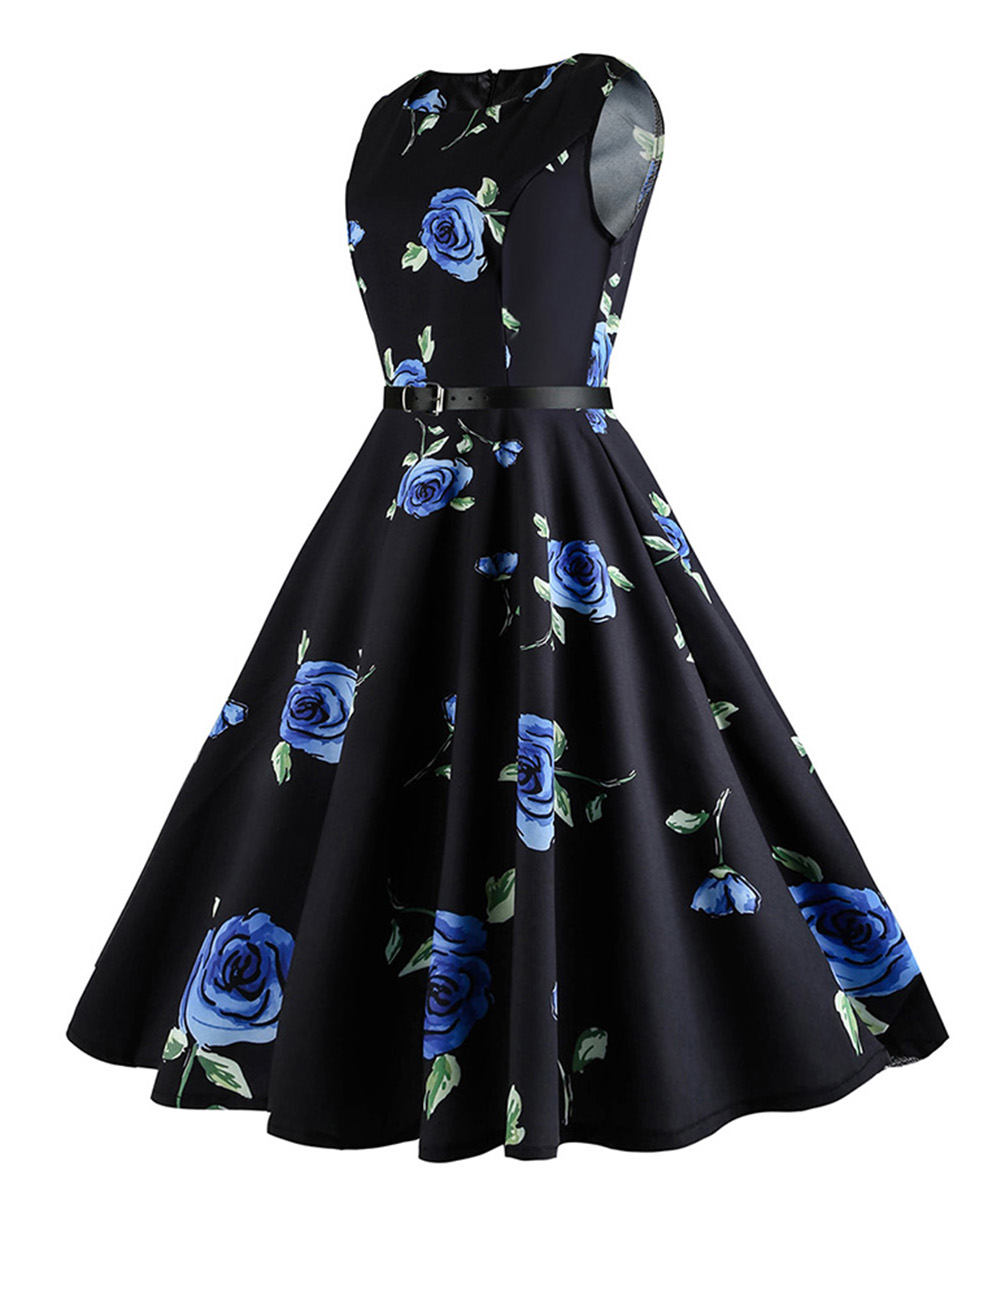 //cdn.affectcloud.com/feelingirldress/upload/imgs/2019-05-13/I195195-M01/I195195-M01-3.jpg